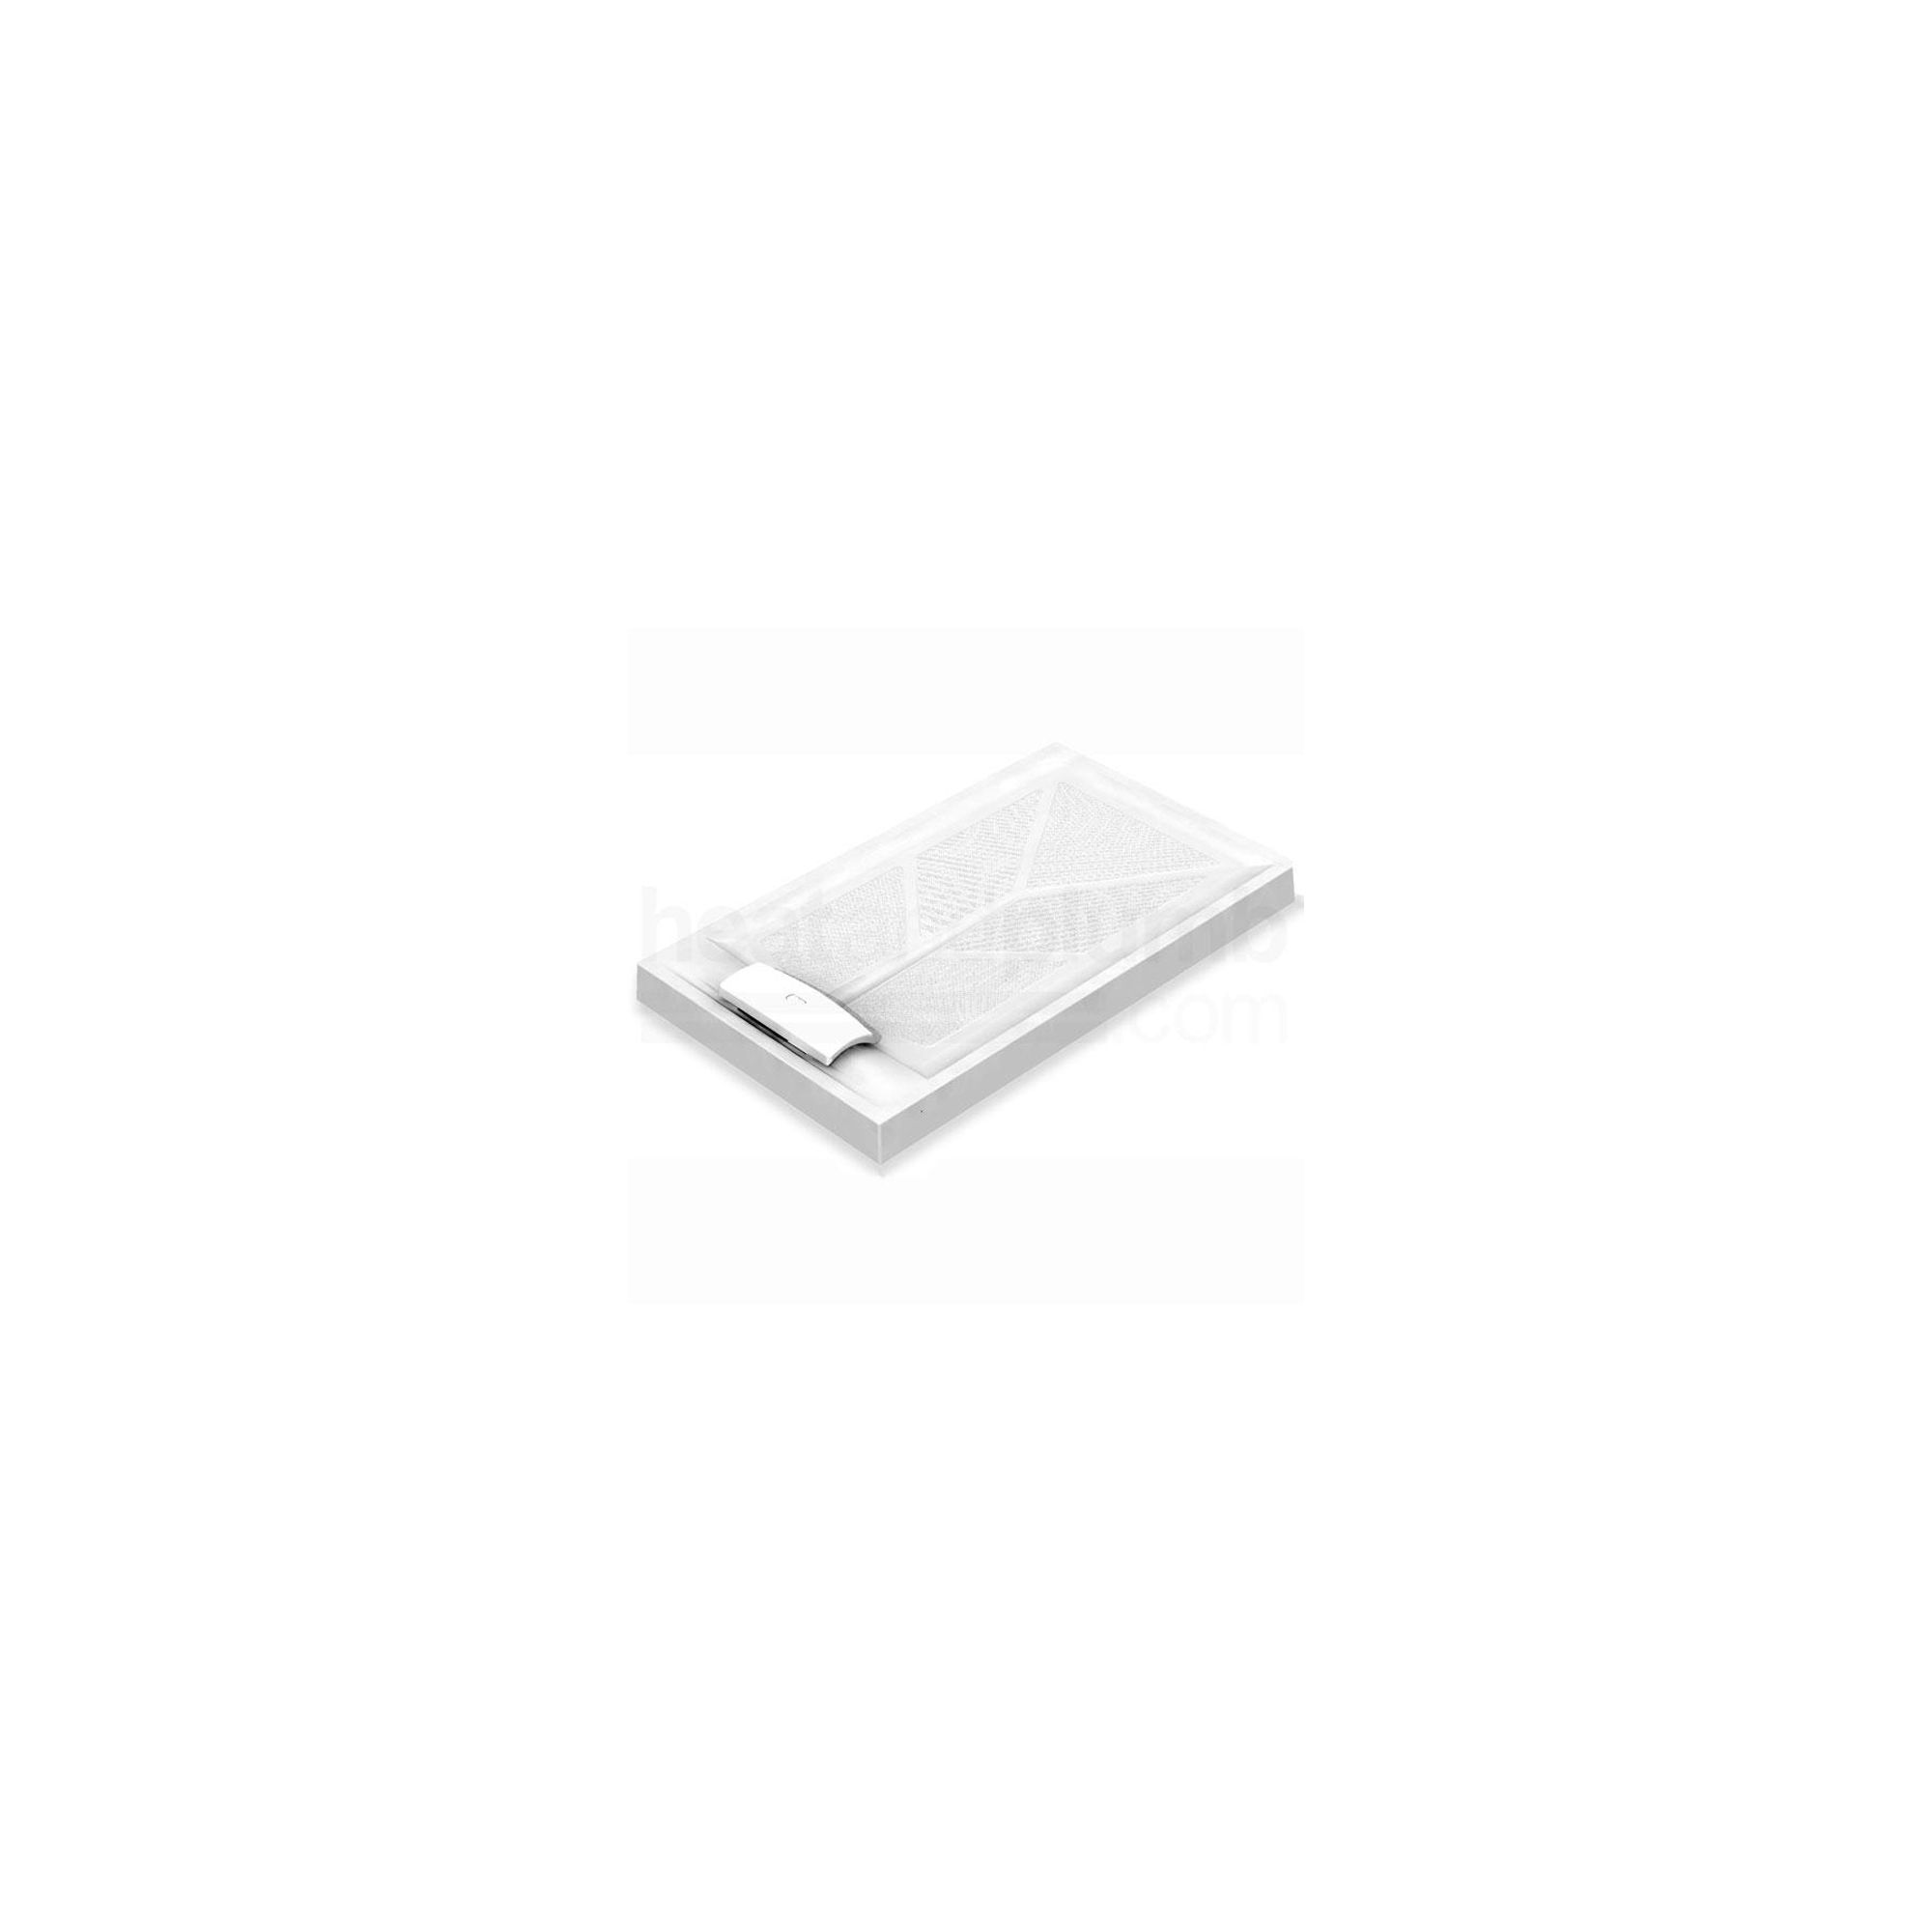 AKW Sulby Rectangular Shower Tray 1300mm x 700mm x 110mm High at Tesco Direct